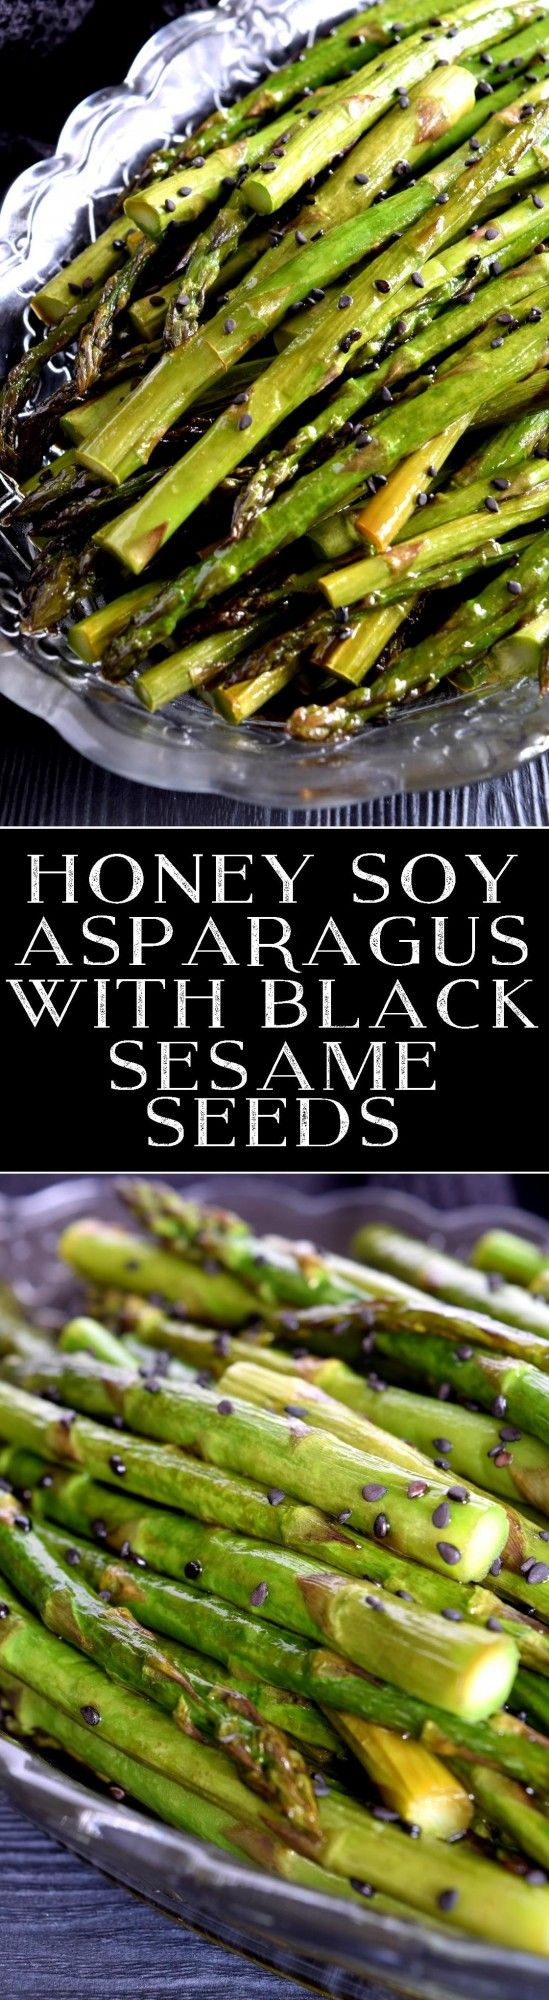 Honey Soy Asparagus with Black Sesame Seeds - Lord Byron's Kitchen